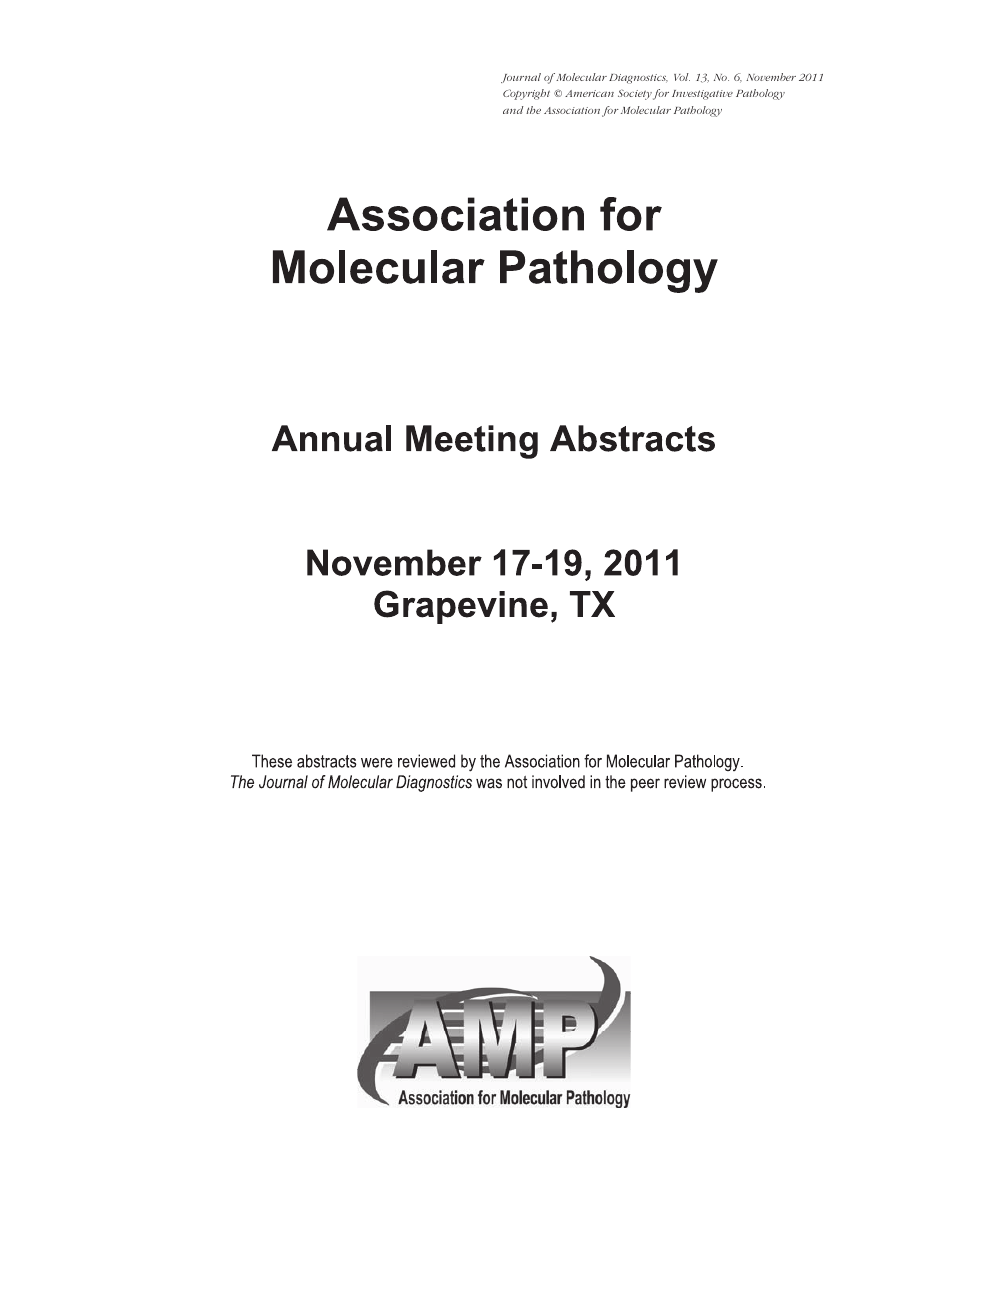 Annual Meeting Abstracts – topic of research paper in